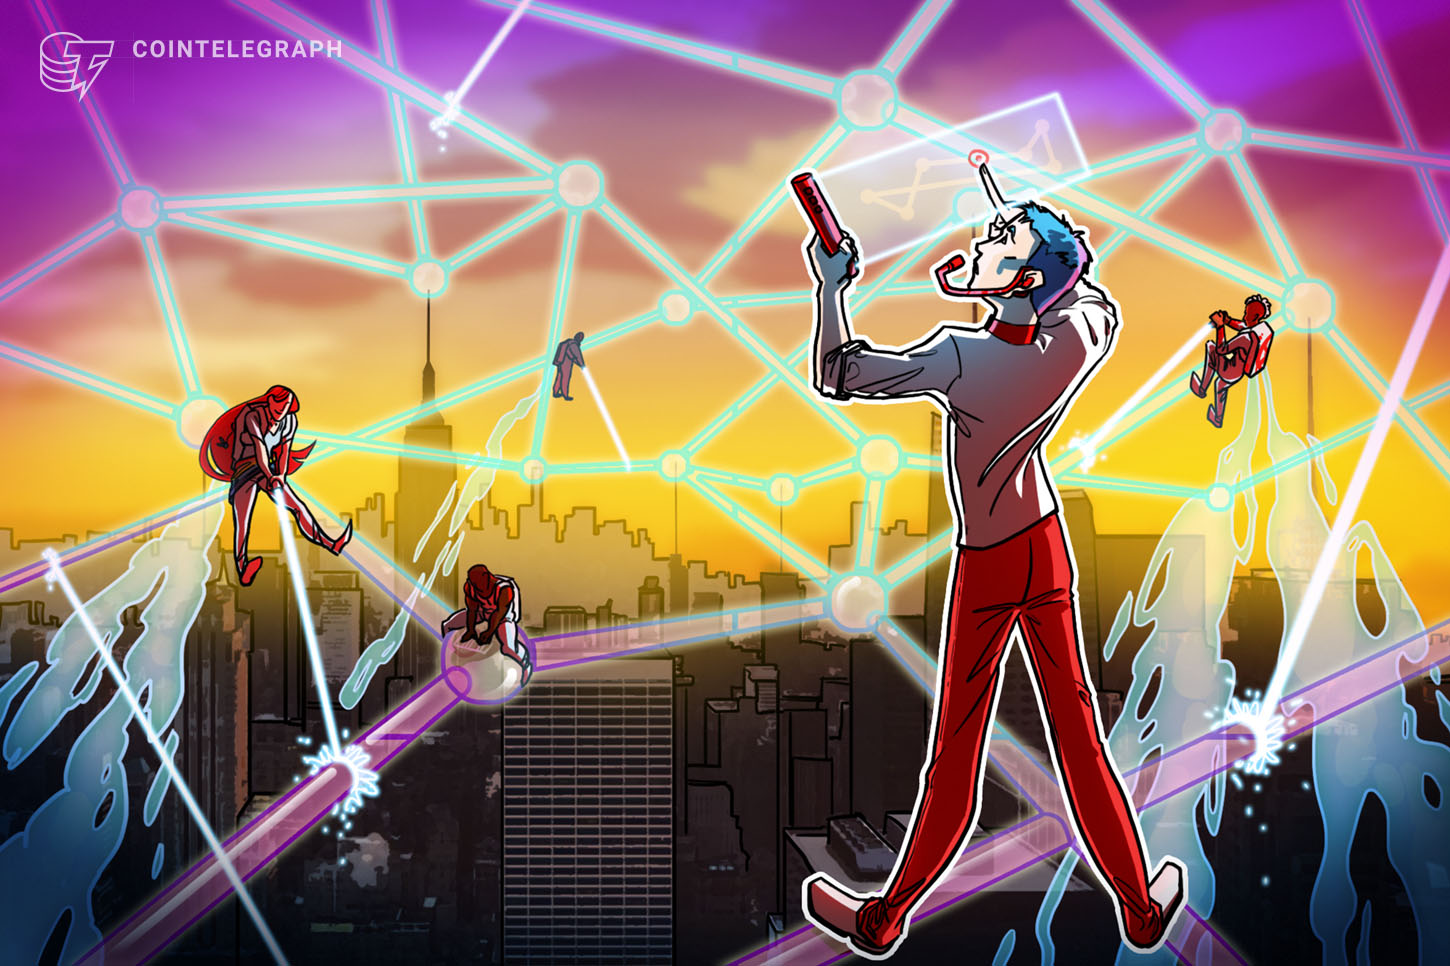 LINK price locks in 36% gains following Ethereum layer-2' Chainlink integration